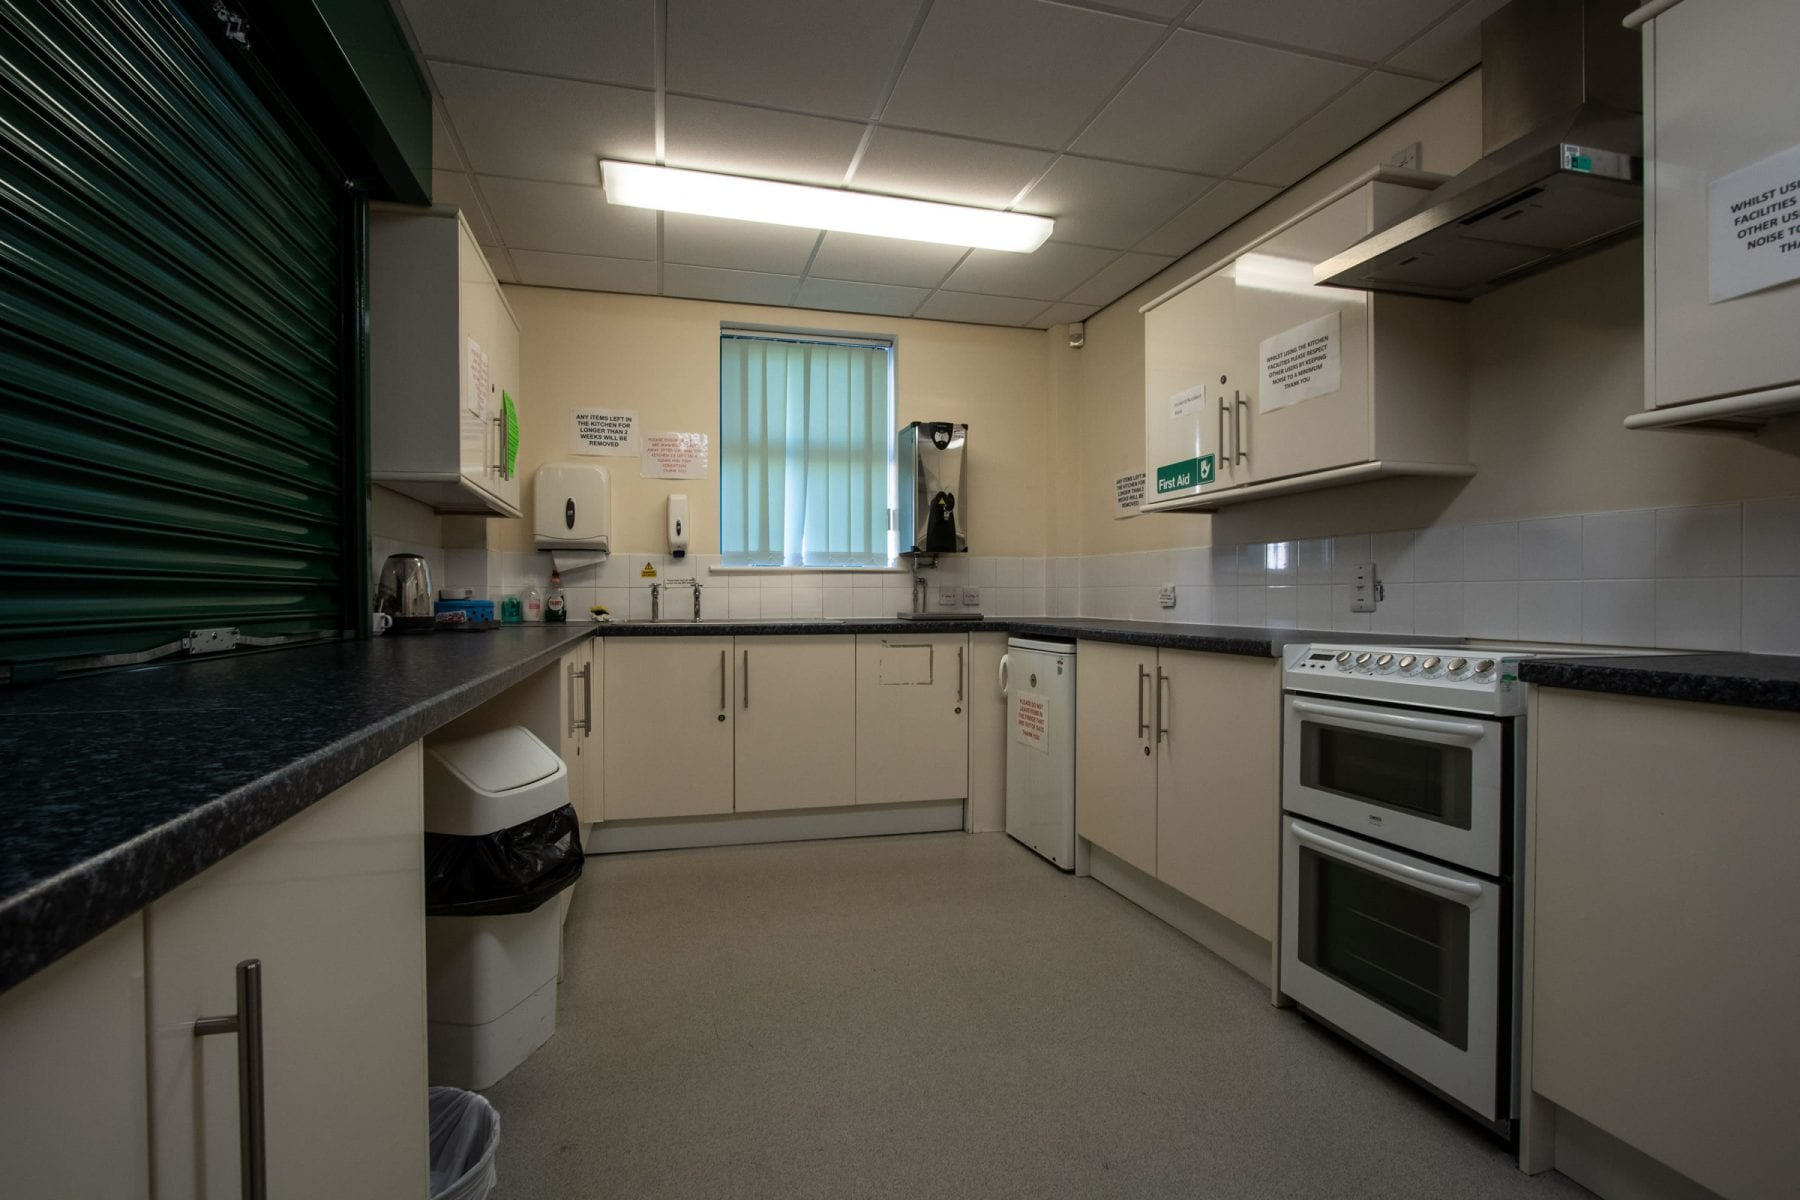 Kitchen facilities at Petuaria Community Centre